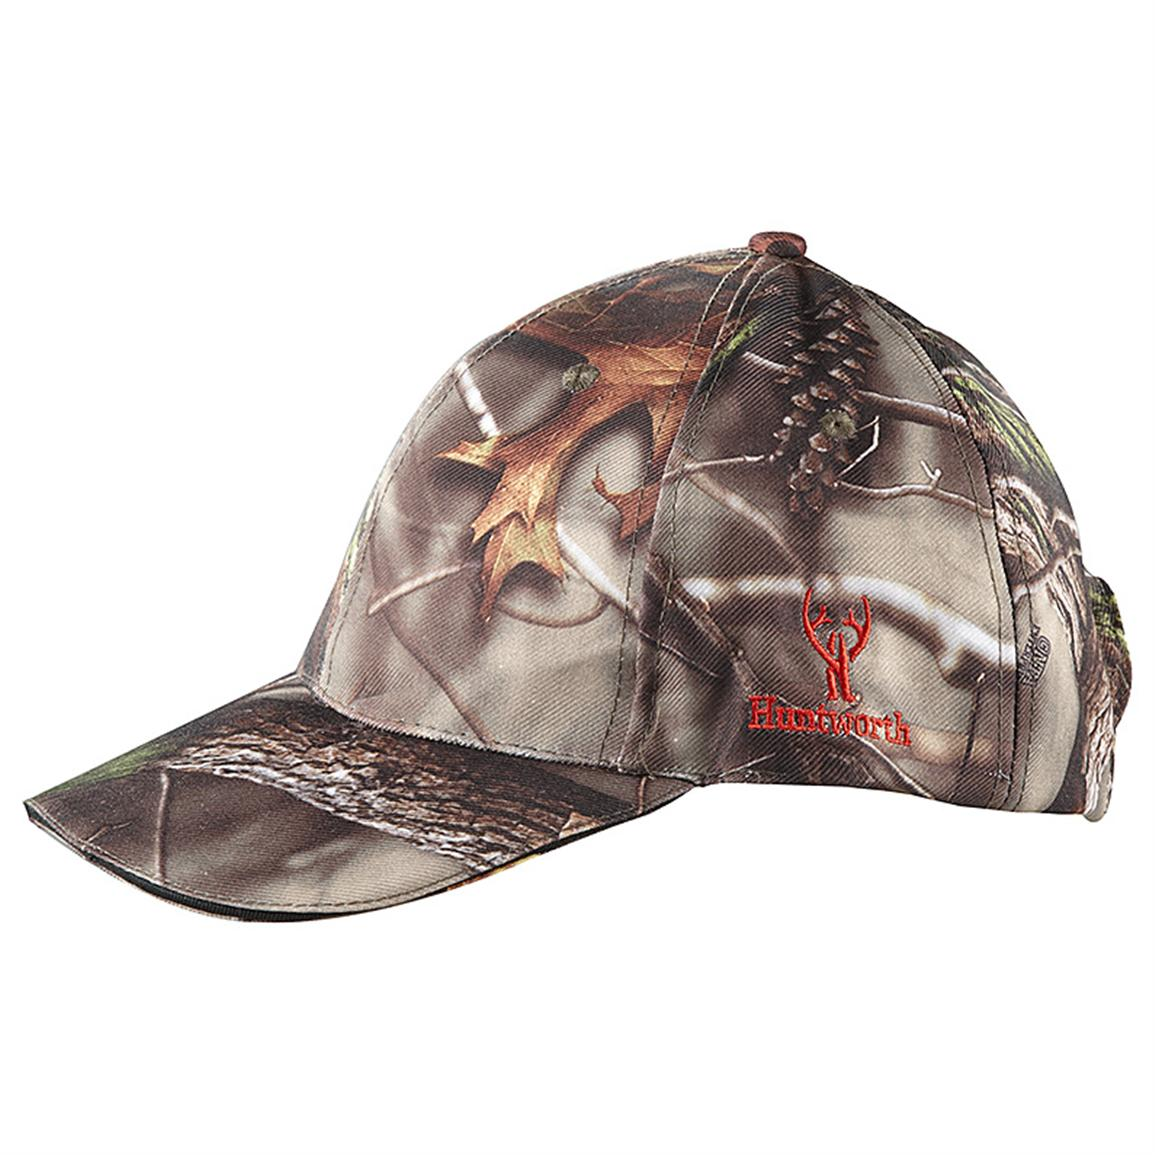 Huntworth™ 3-LED Hunting Cap, Oak Tree